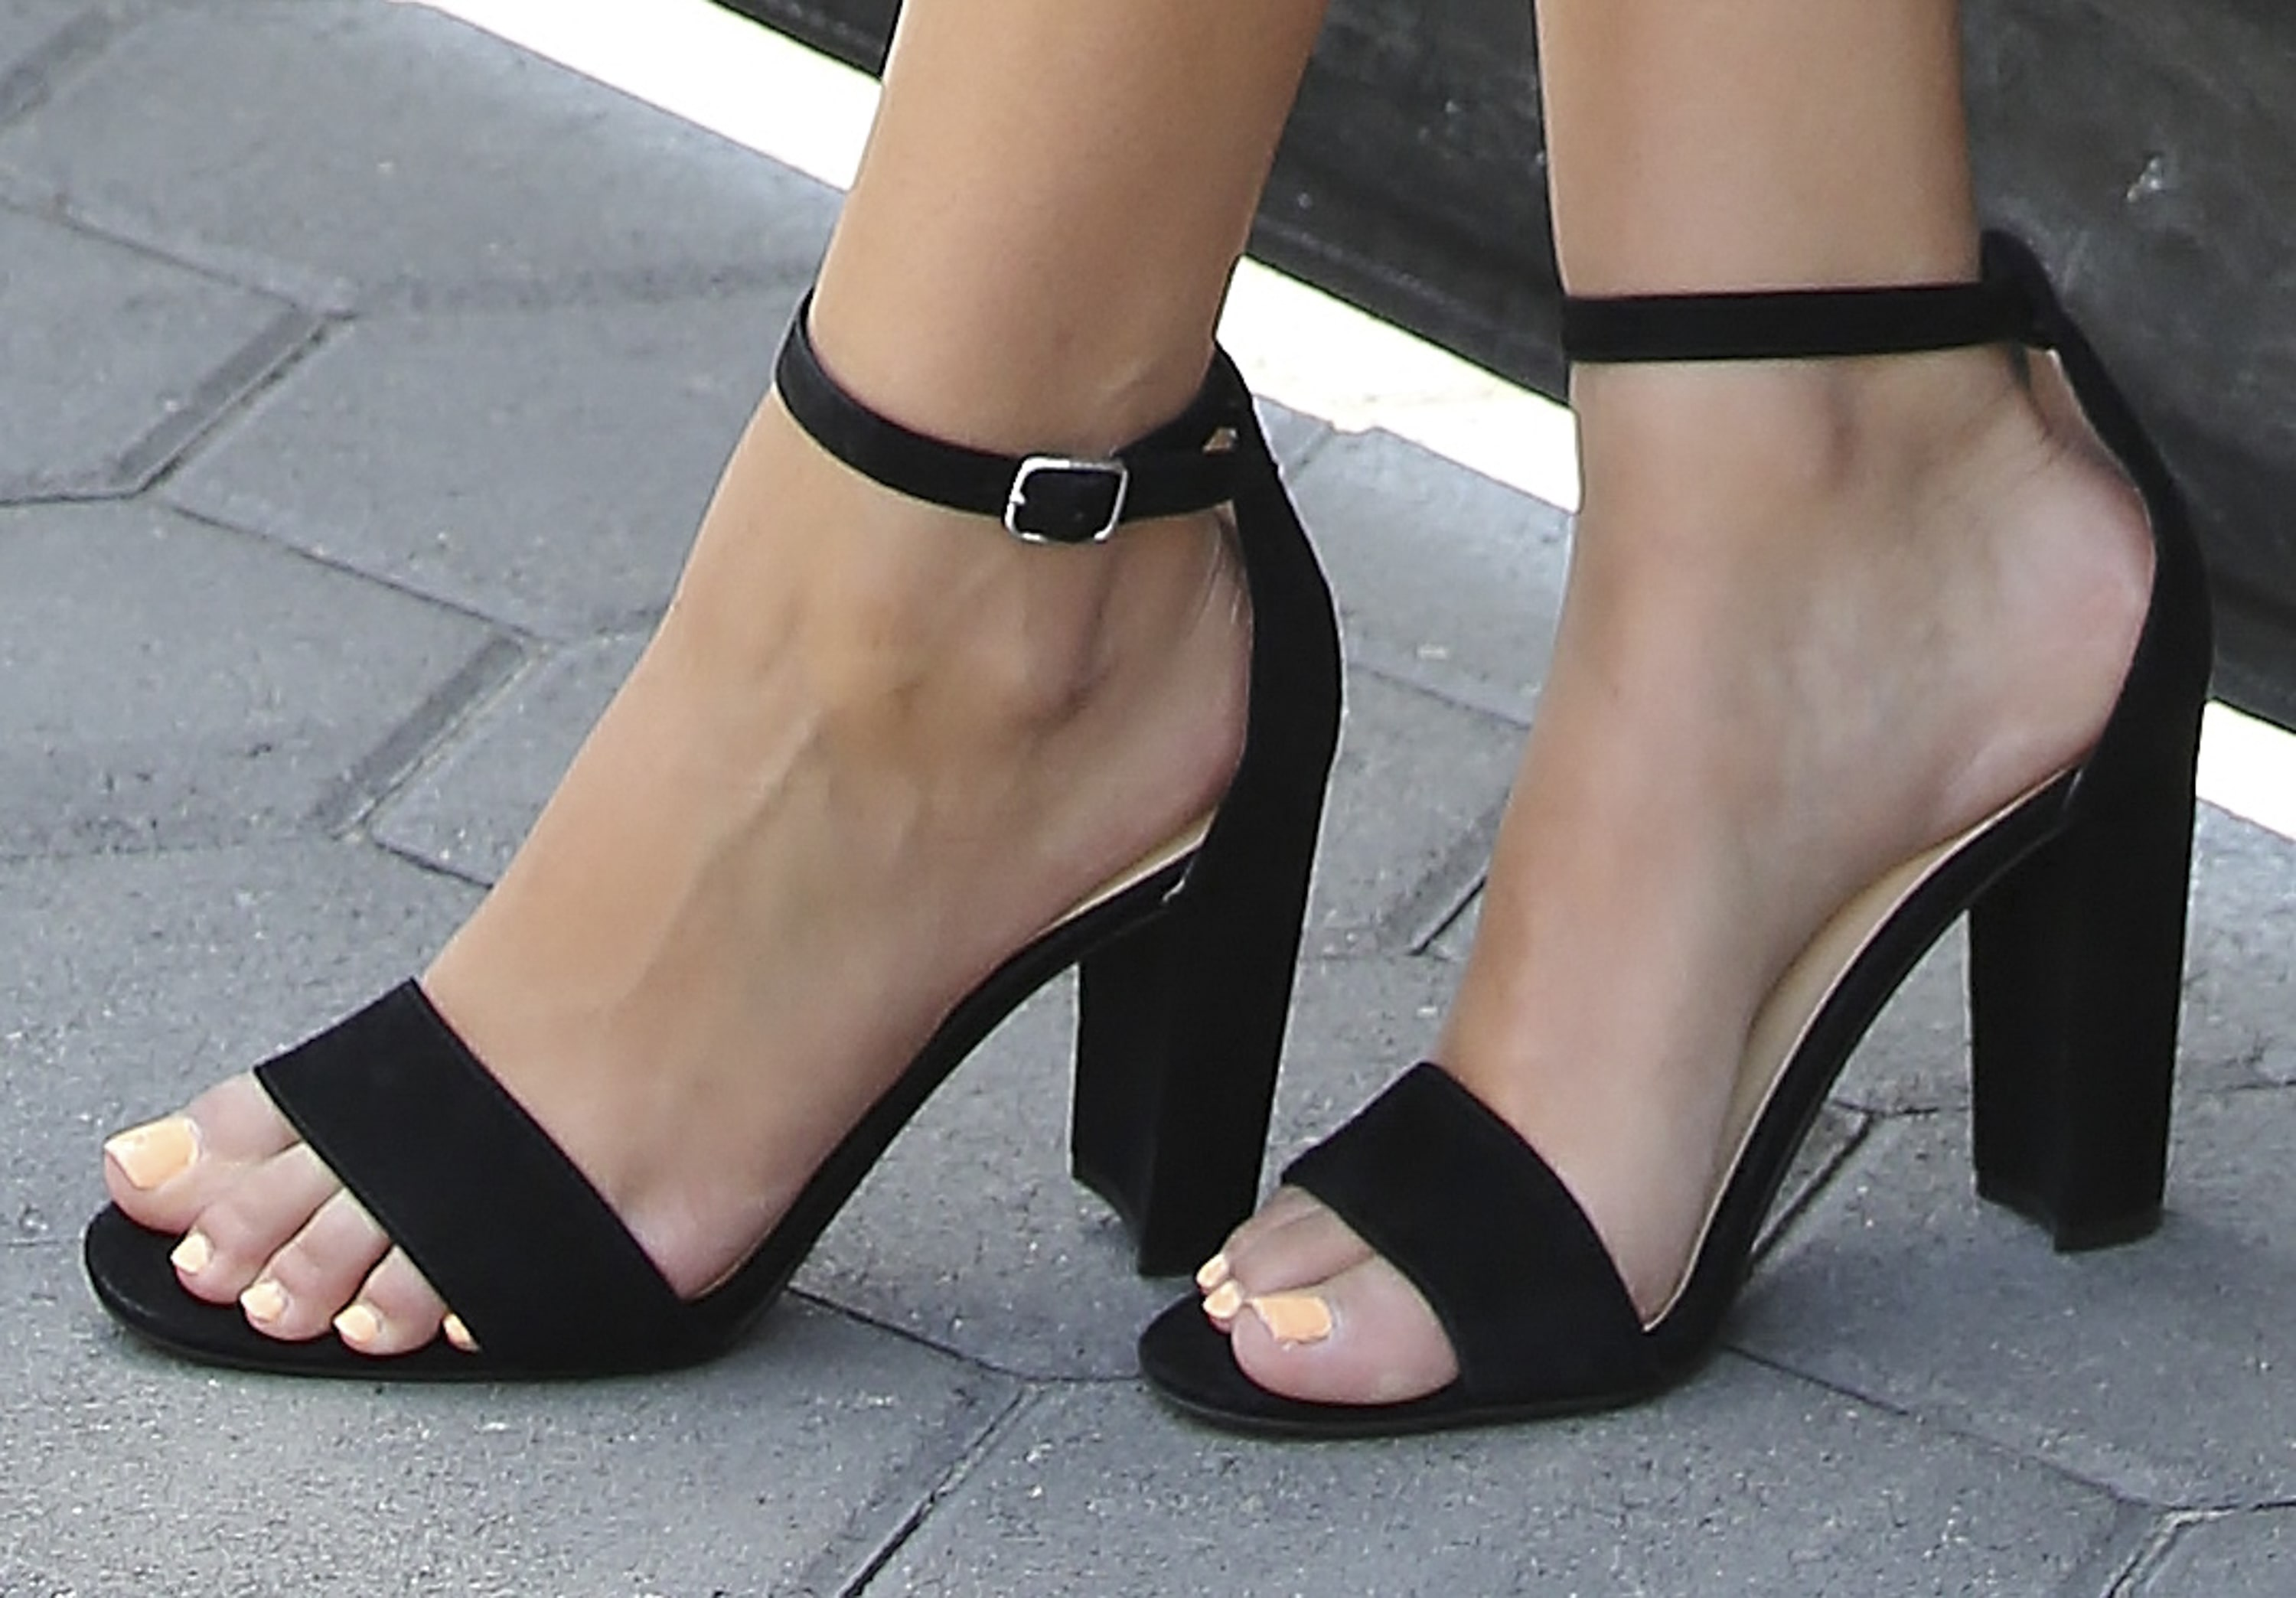 Victoria Justice Sexy Feet Picture